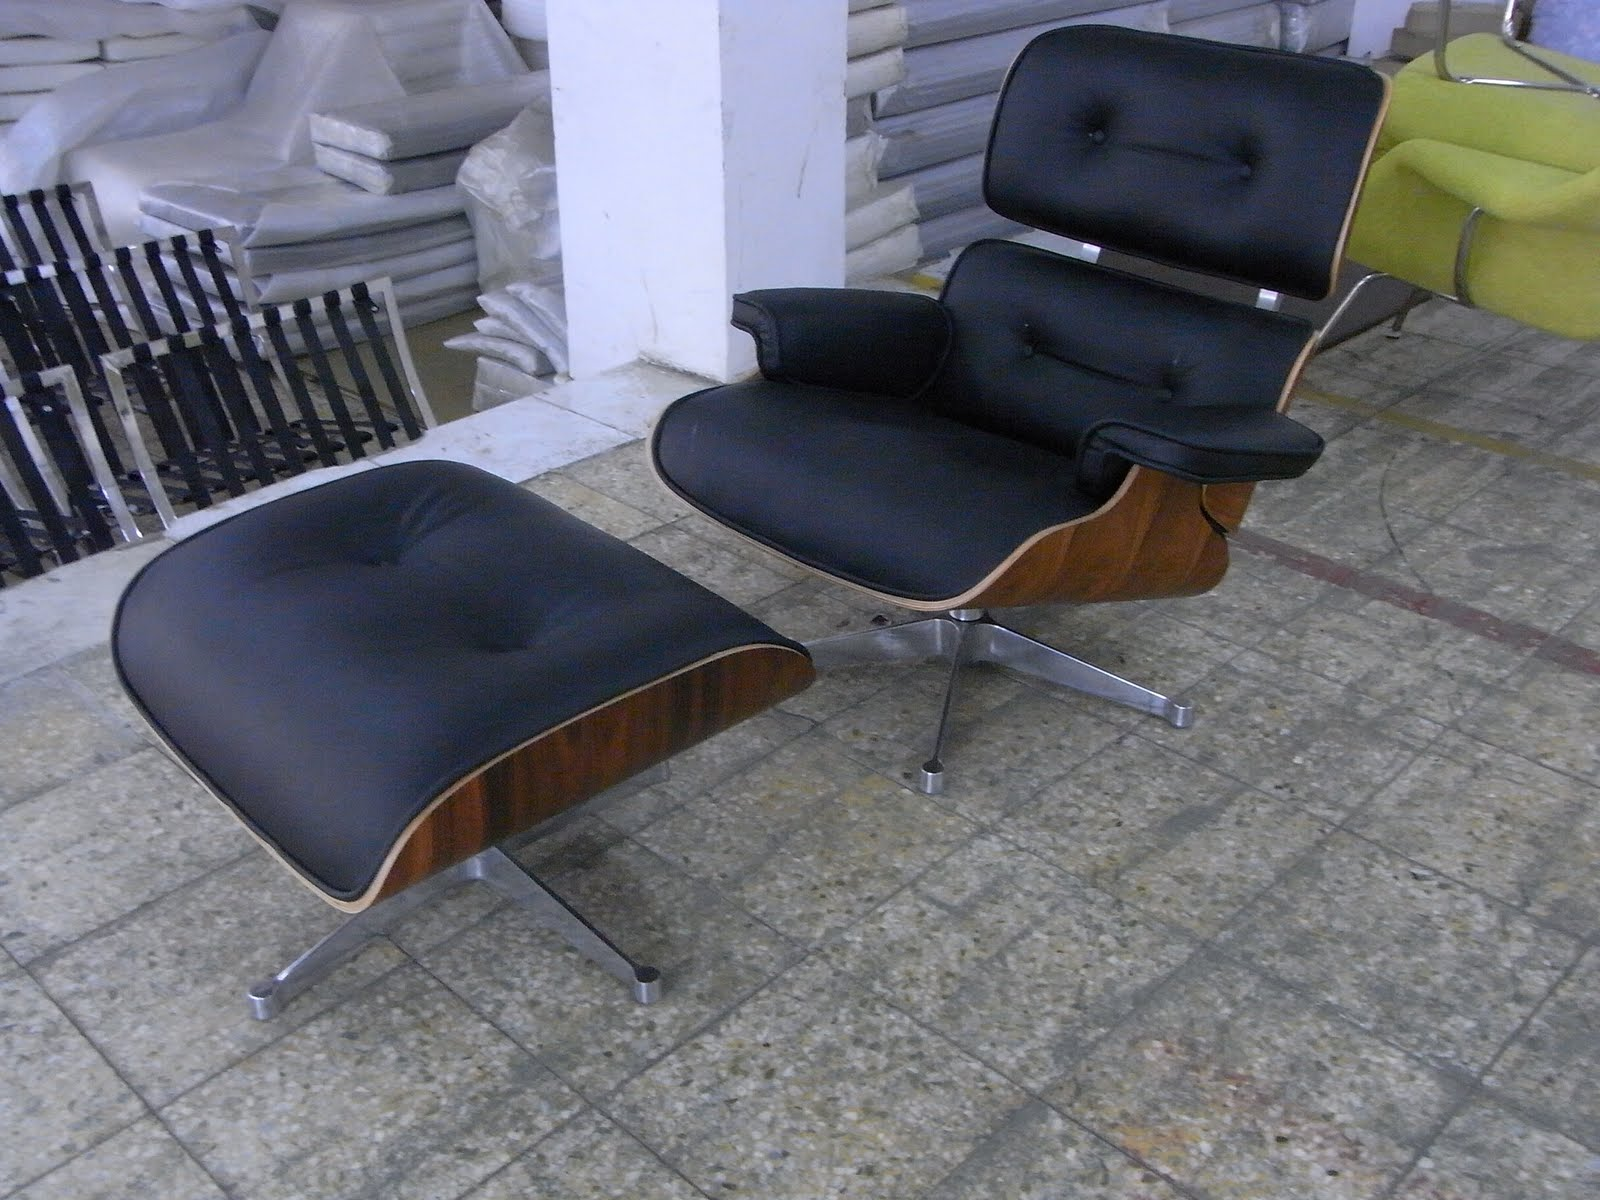 Eames Lounge Chair With Metal Finish Frame- New & The Mod Spot: Eames Lounge Chair With Metal Finish Frame- New